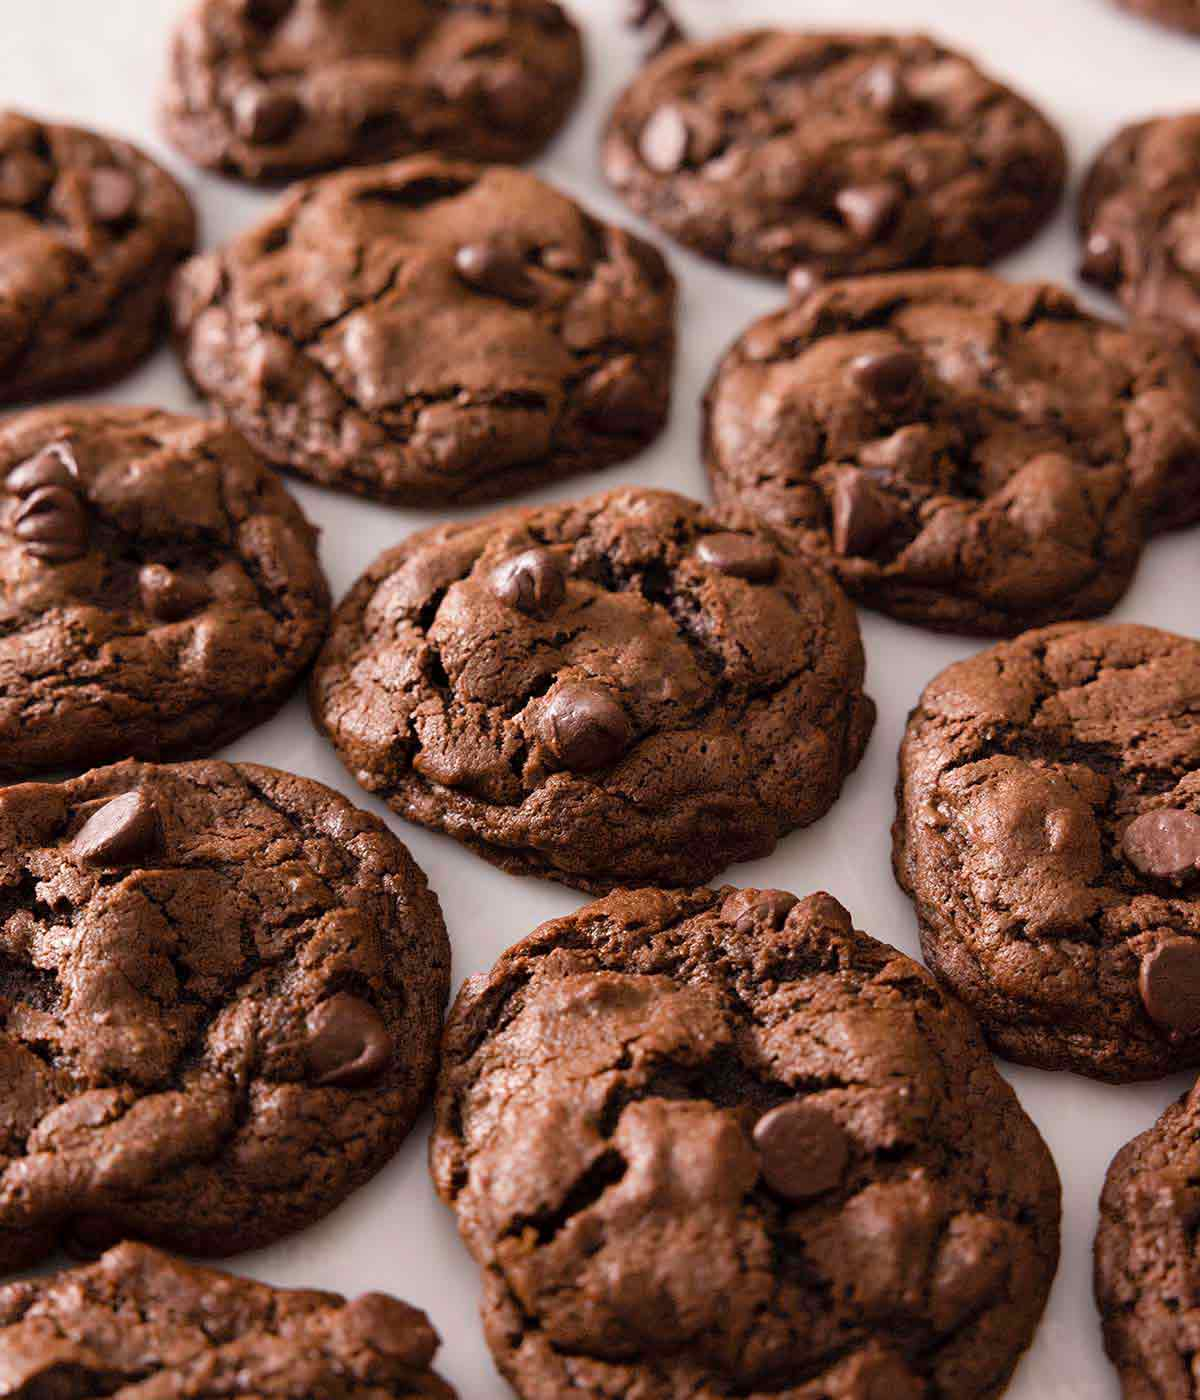 Multiple double chocolate chip cookies in a single layer on a counter.